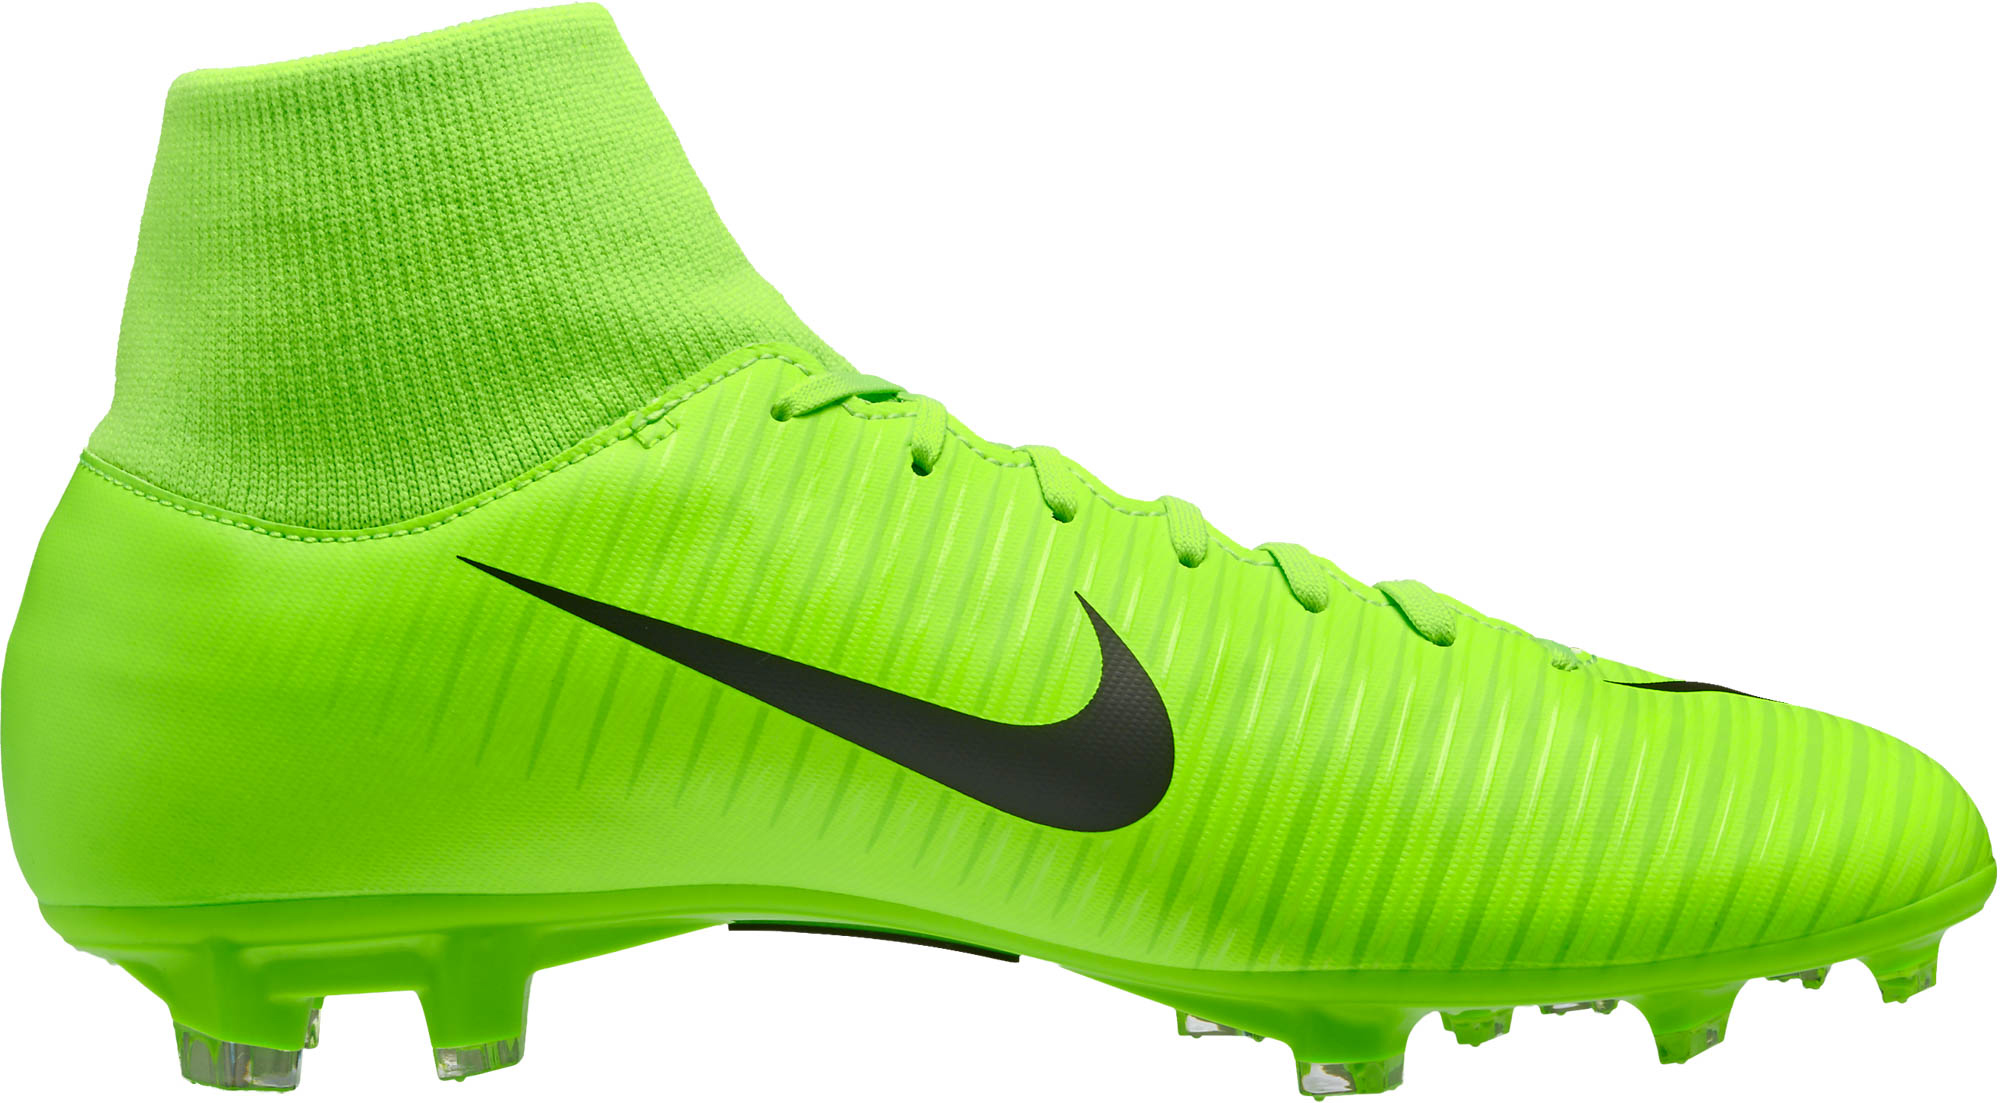 new style 53f77 21183 Nike Mercurial Victory VI DF FG Soccer Cleats - Electric ...